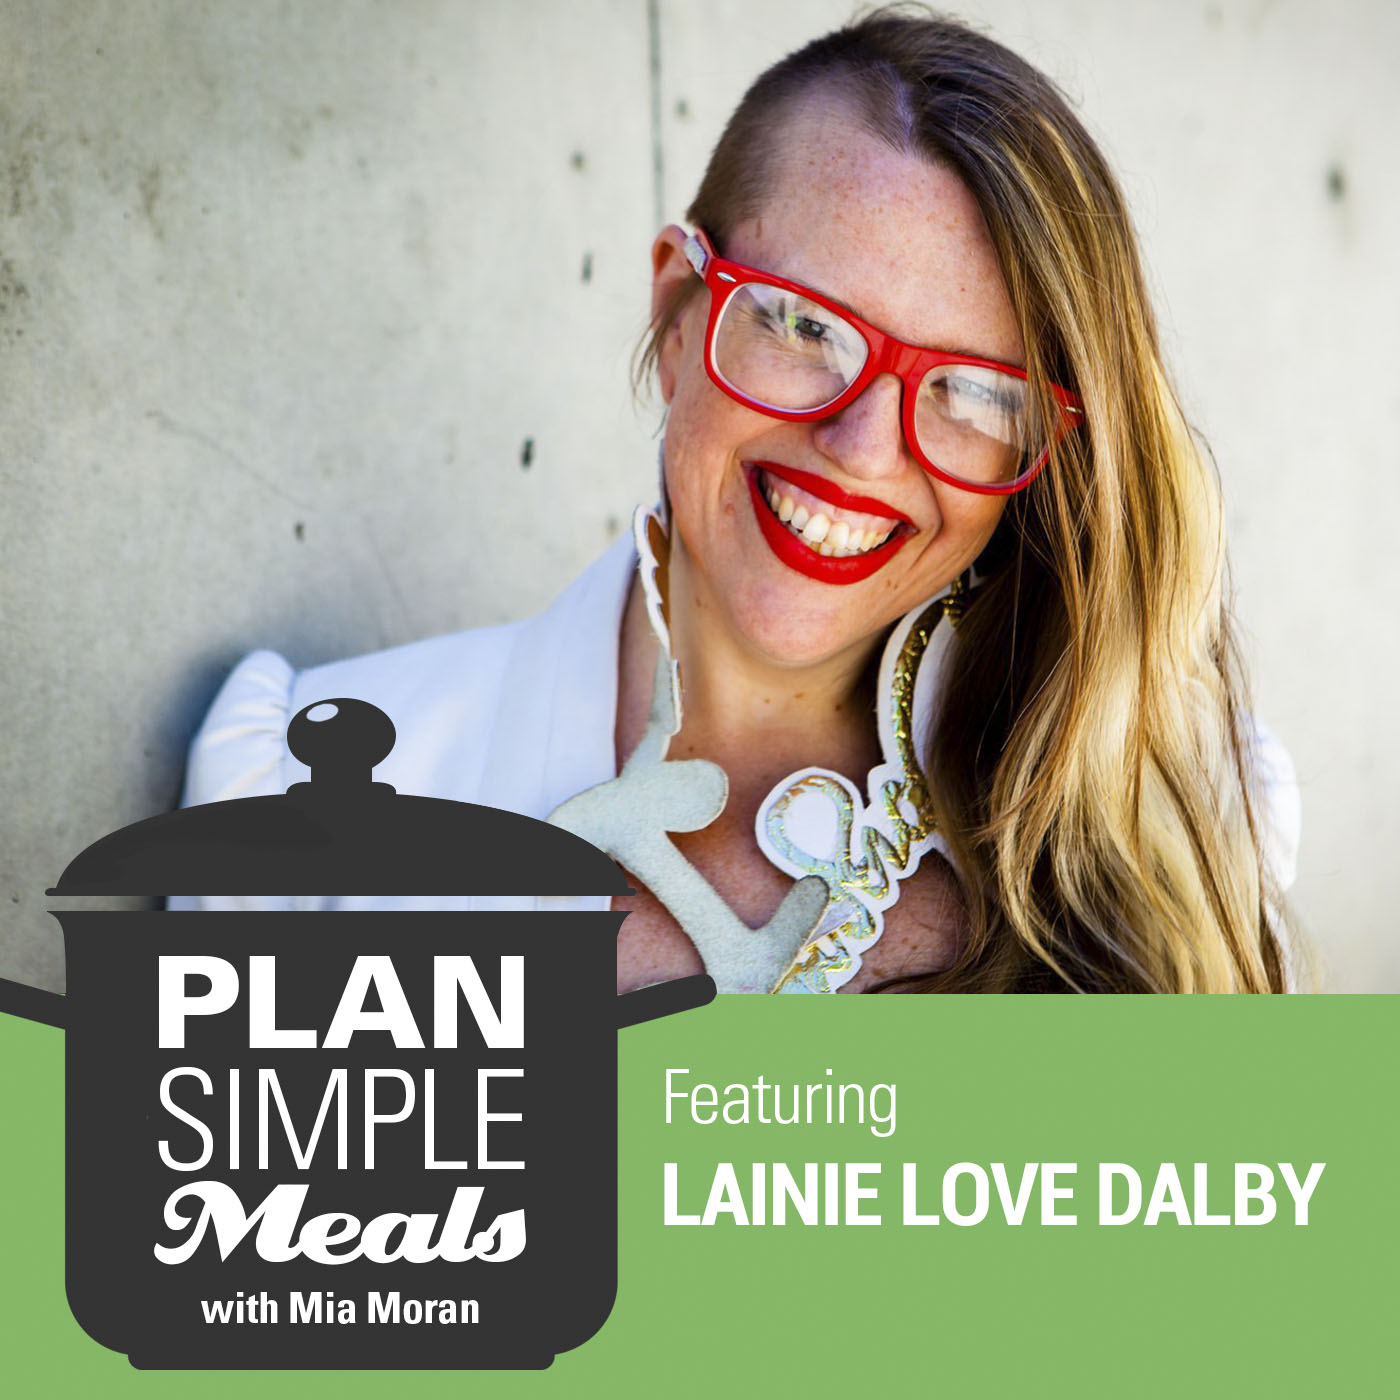 Sparkle Shamelessly With Lainie Love Dalby